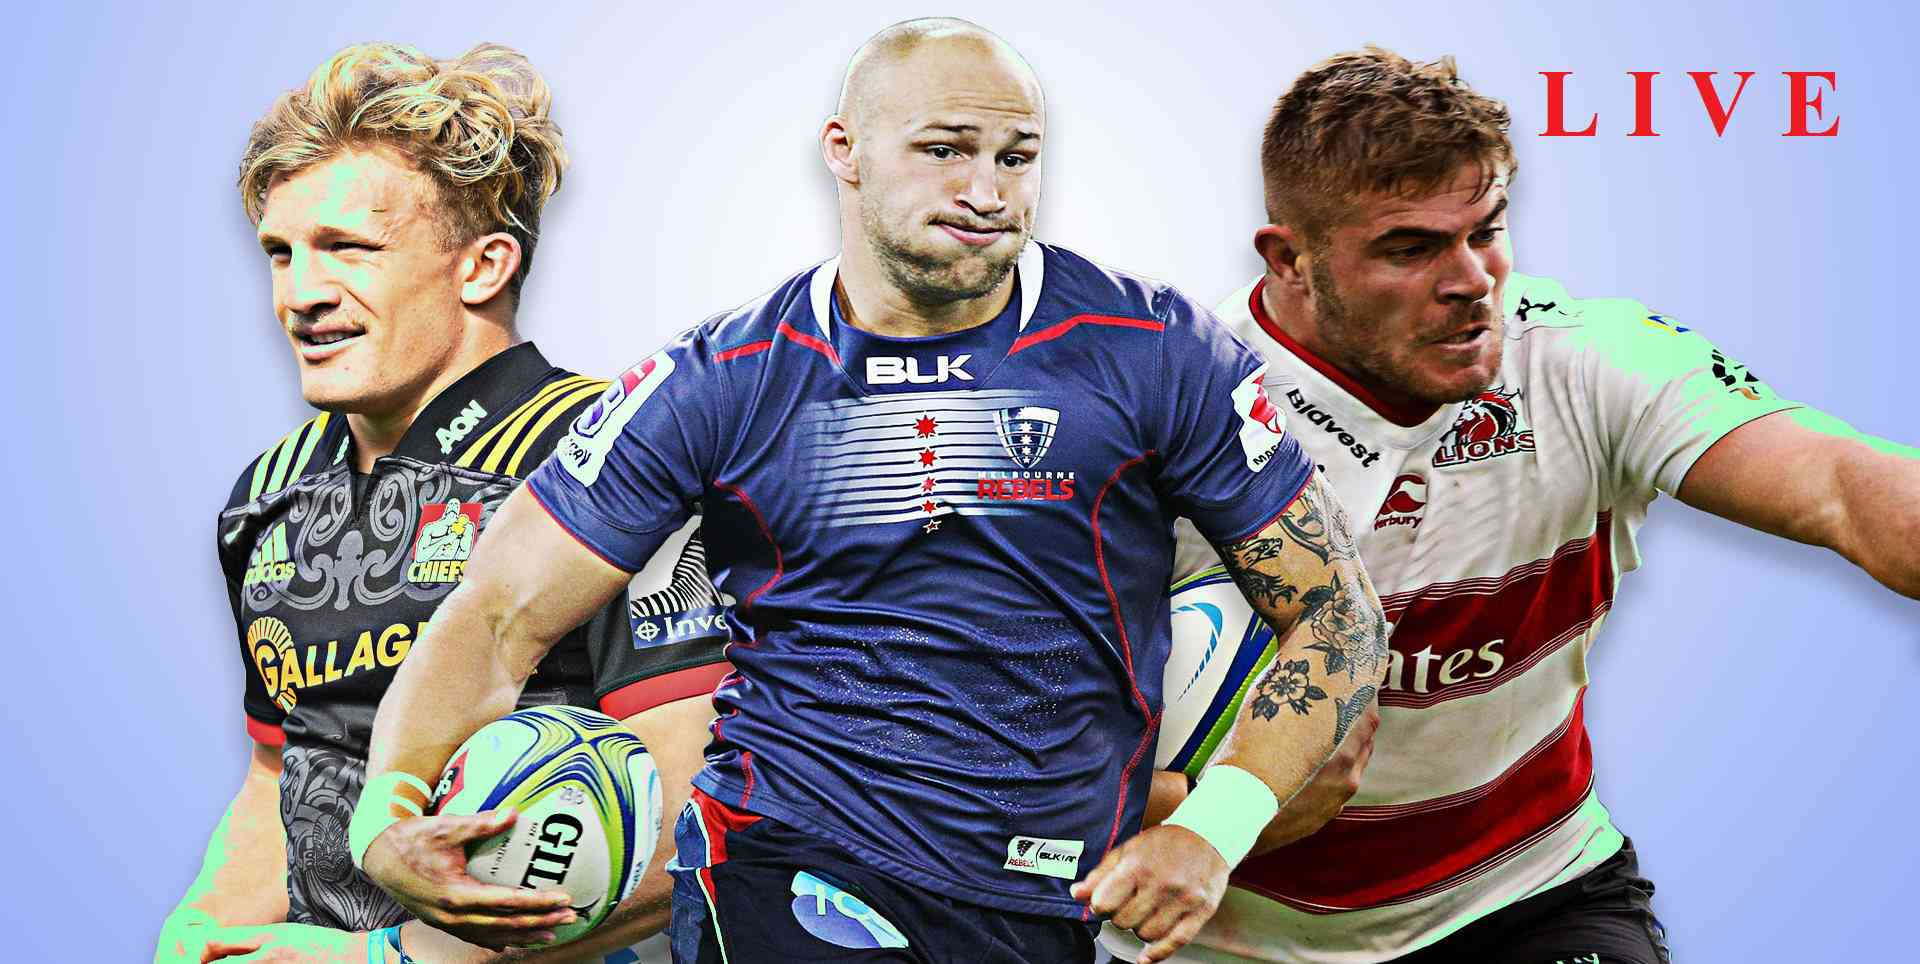 Watch Sunwloves Vs Kings super Rugby Live